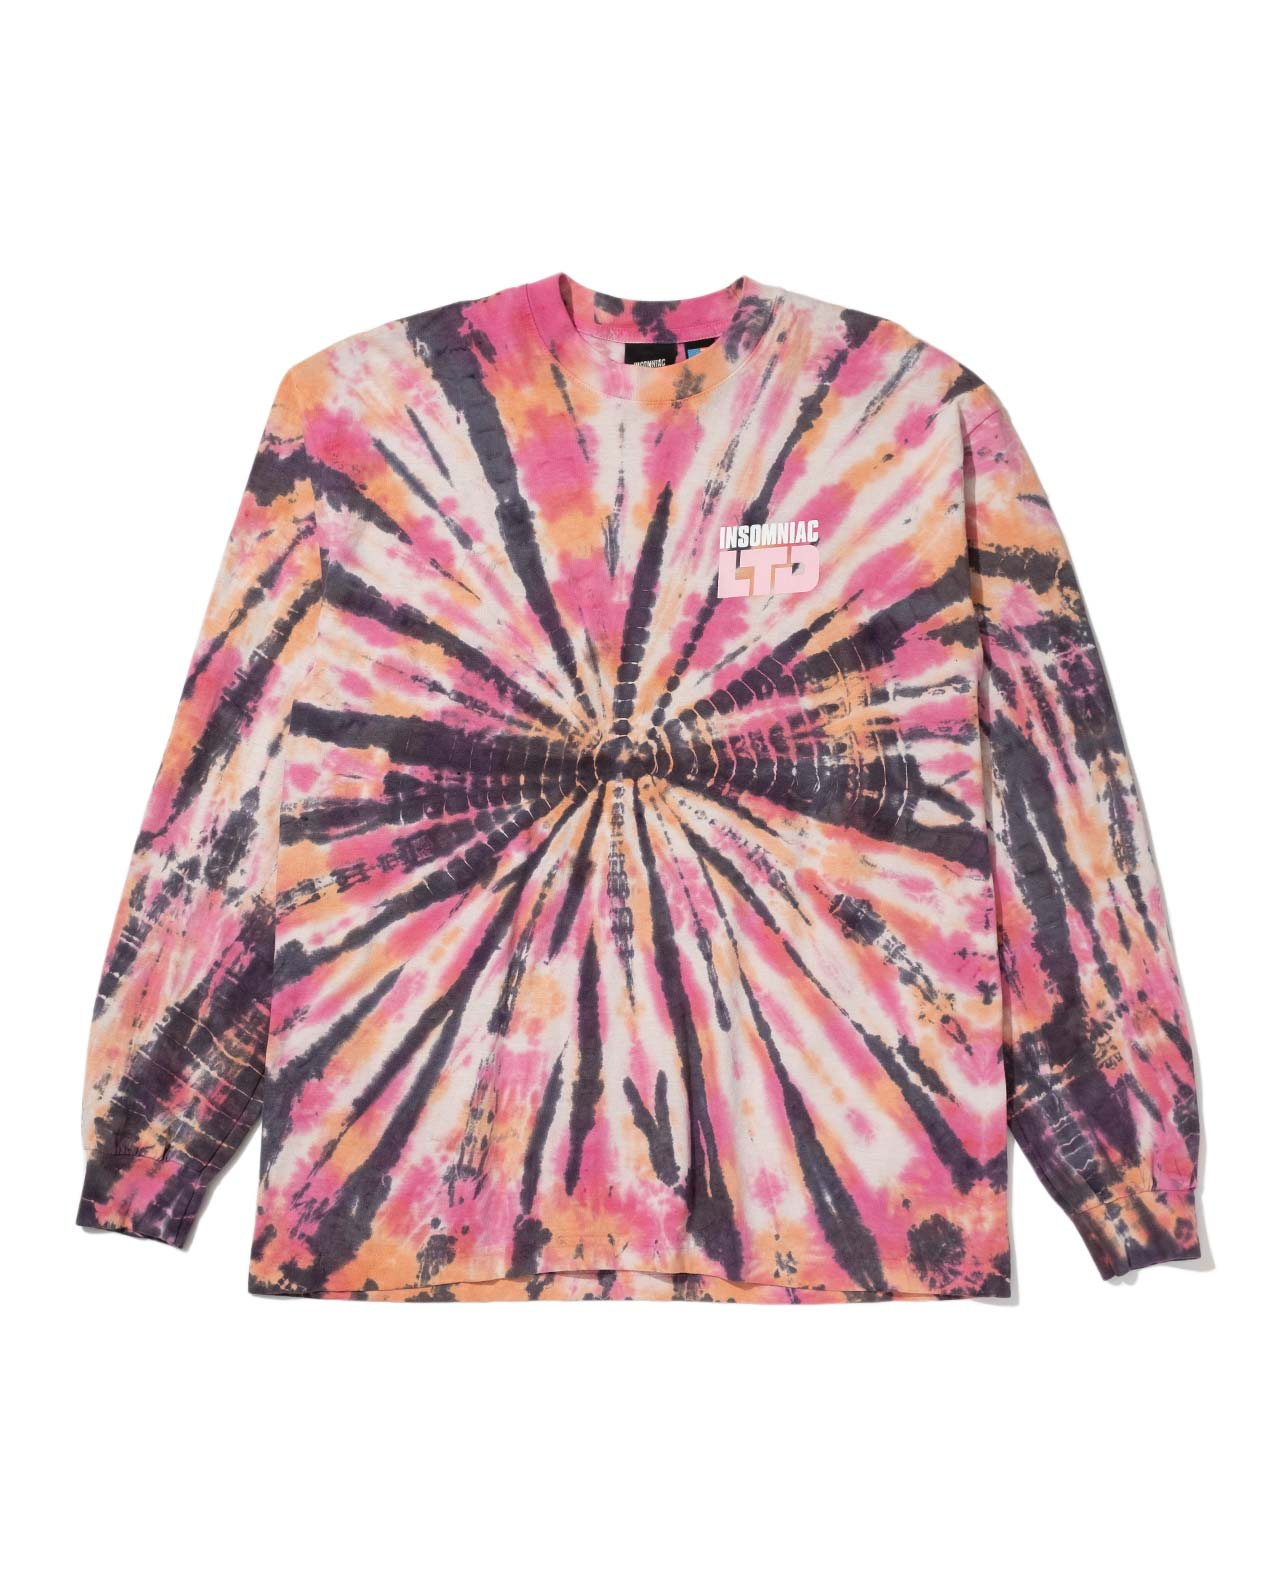 Full BK Tie Dye L/S Tee Red